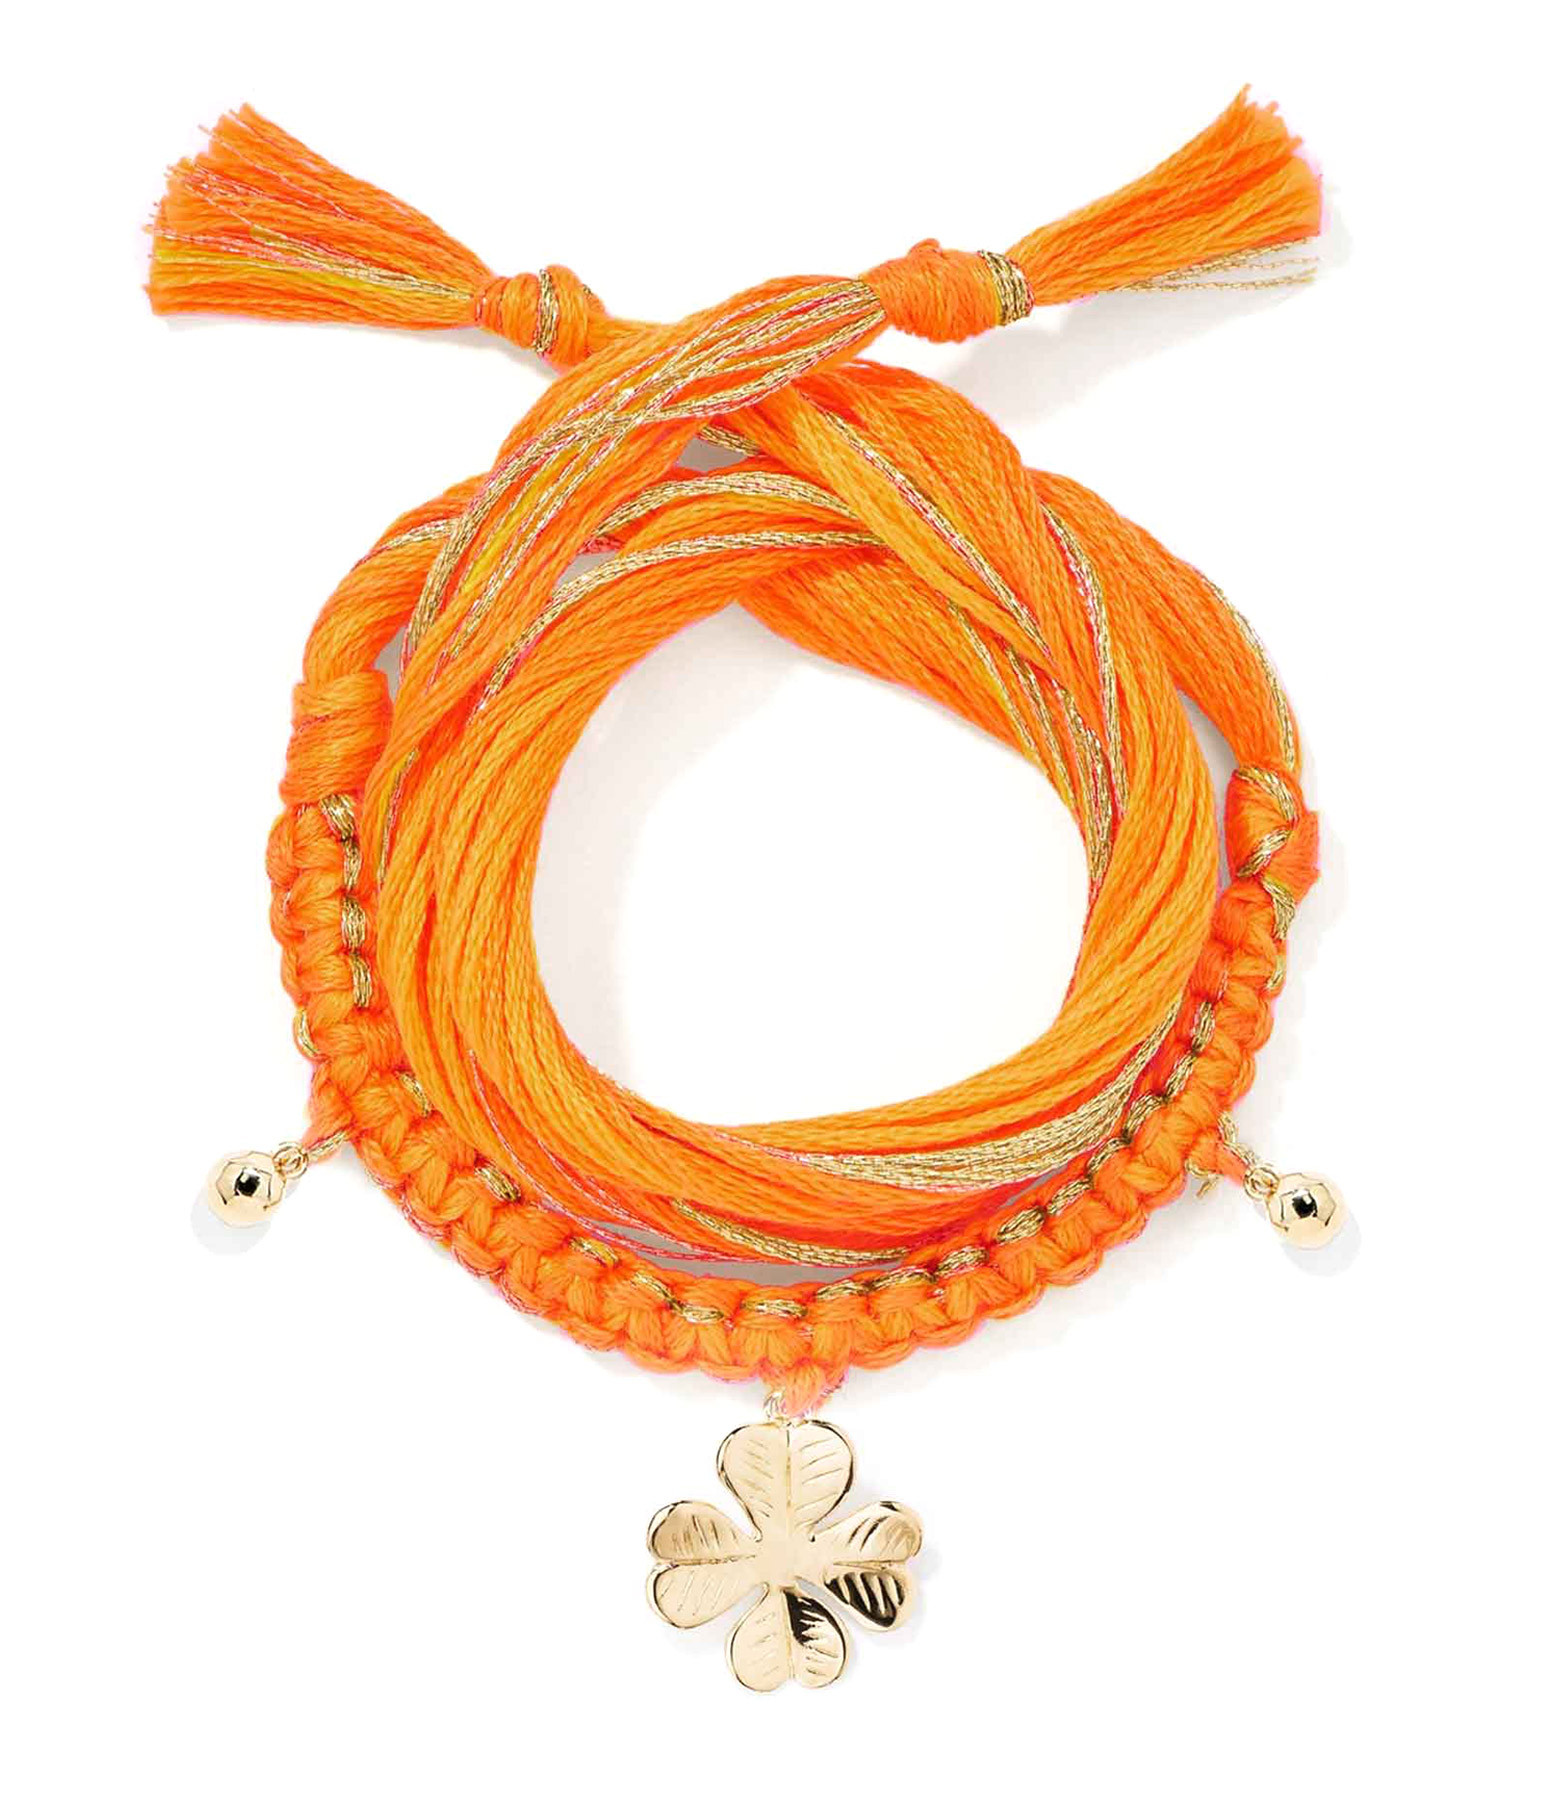 AURELIE BIDERMANN - Bracelet Honolulu Charm Trèfle Orange Plaqué Or